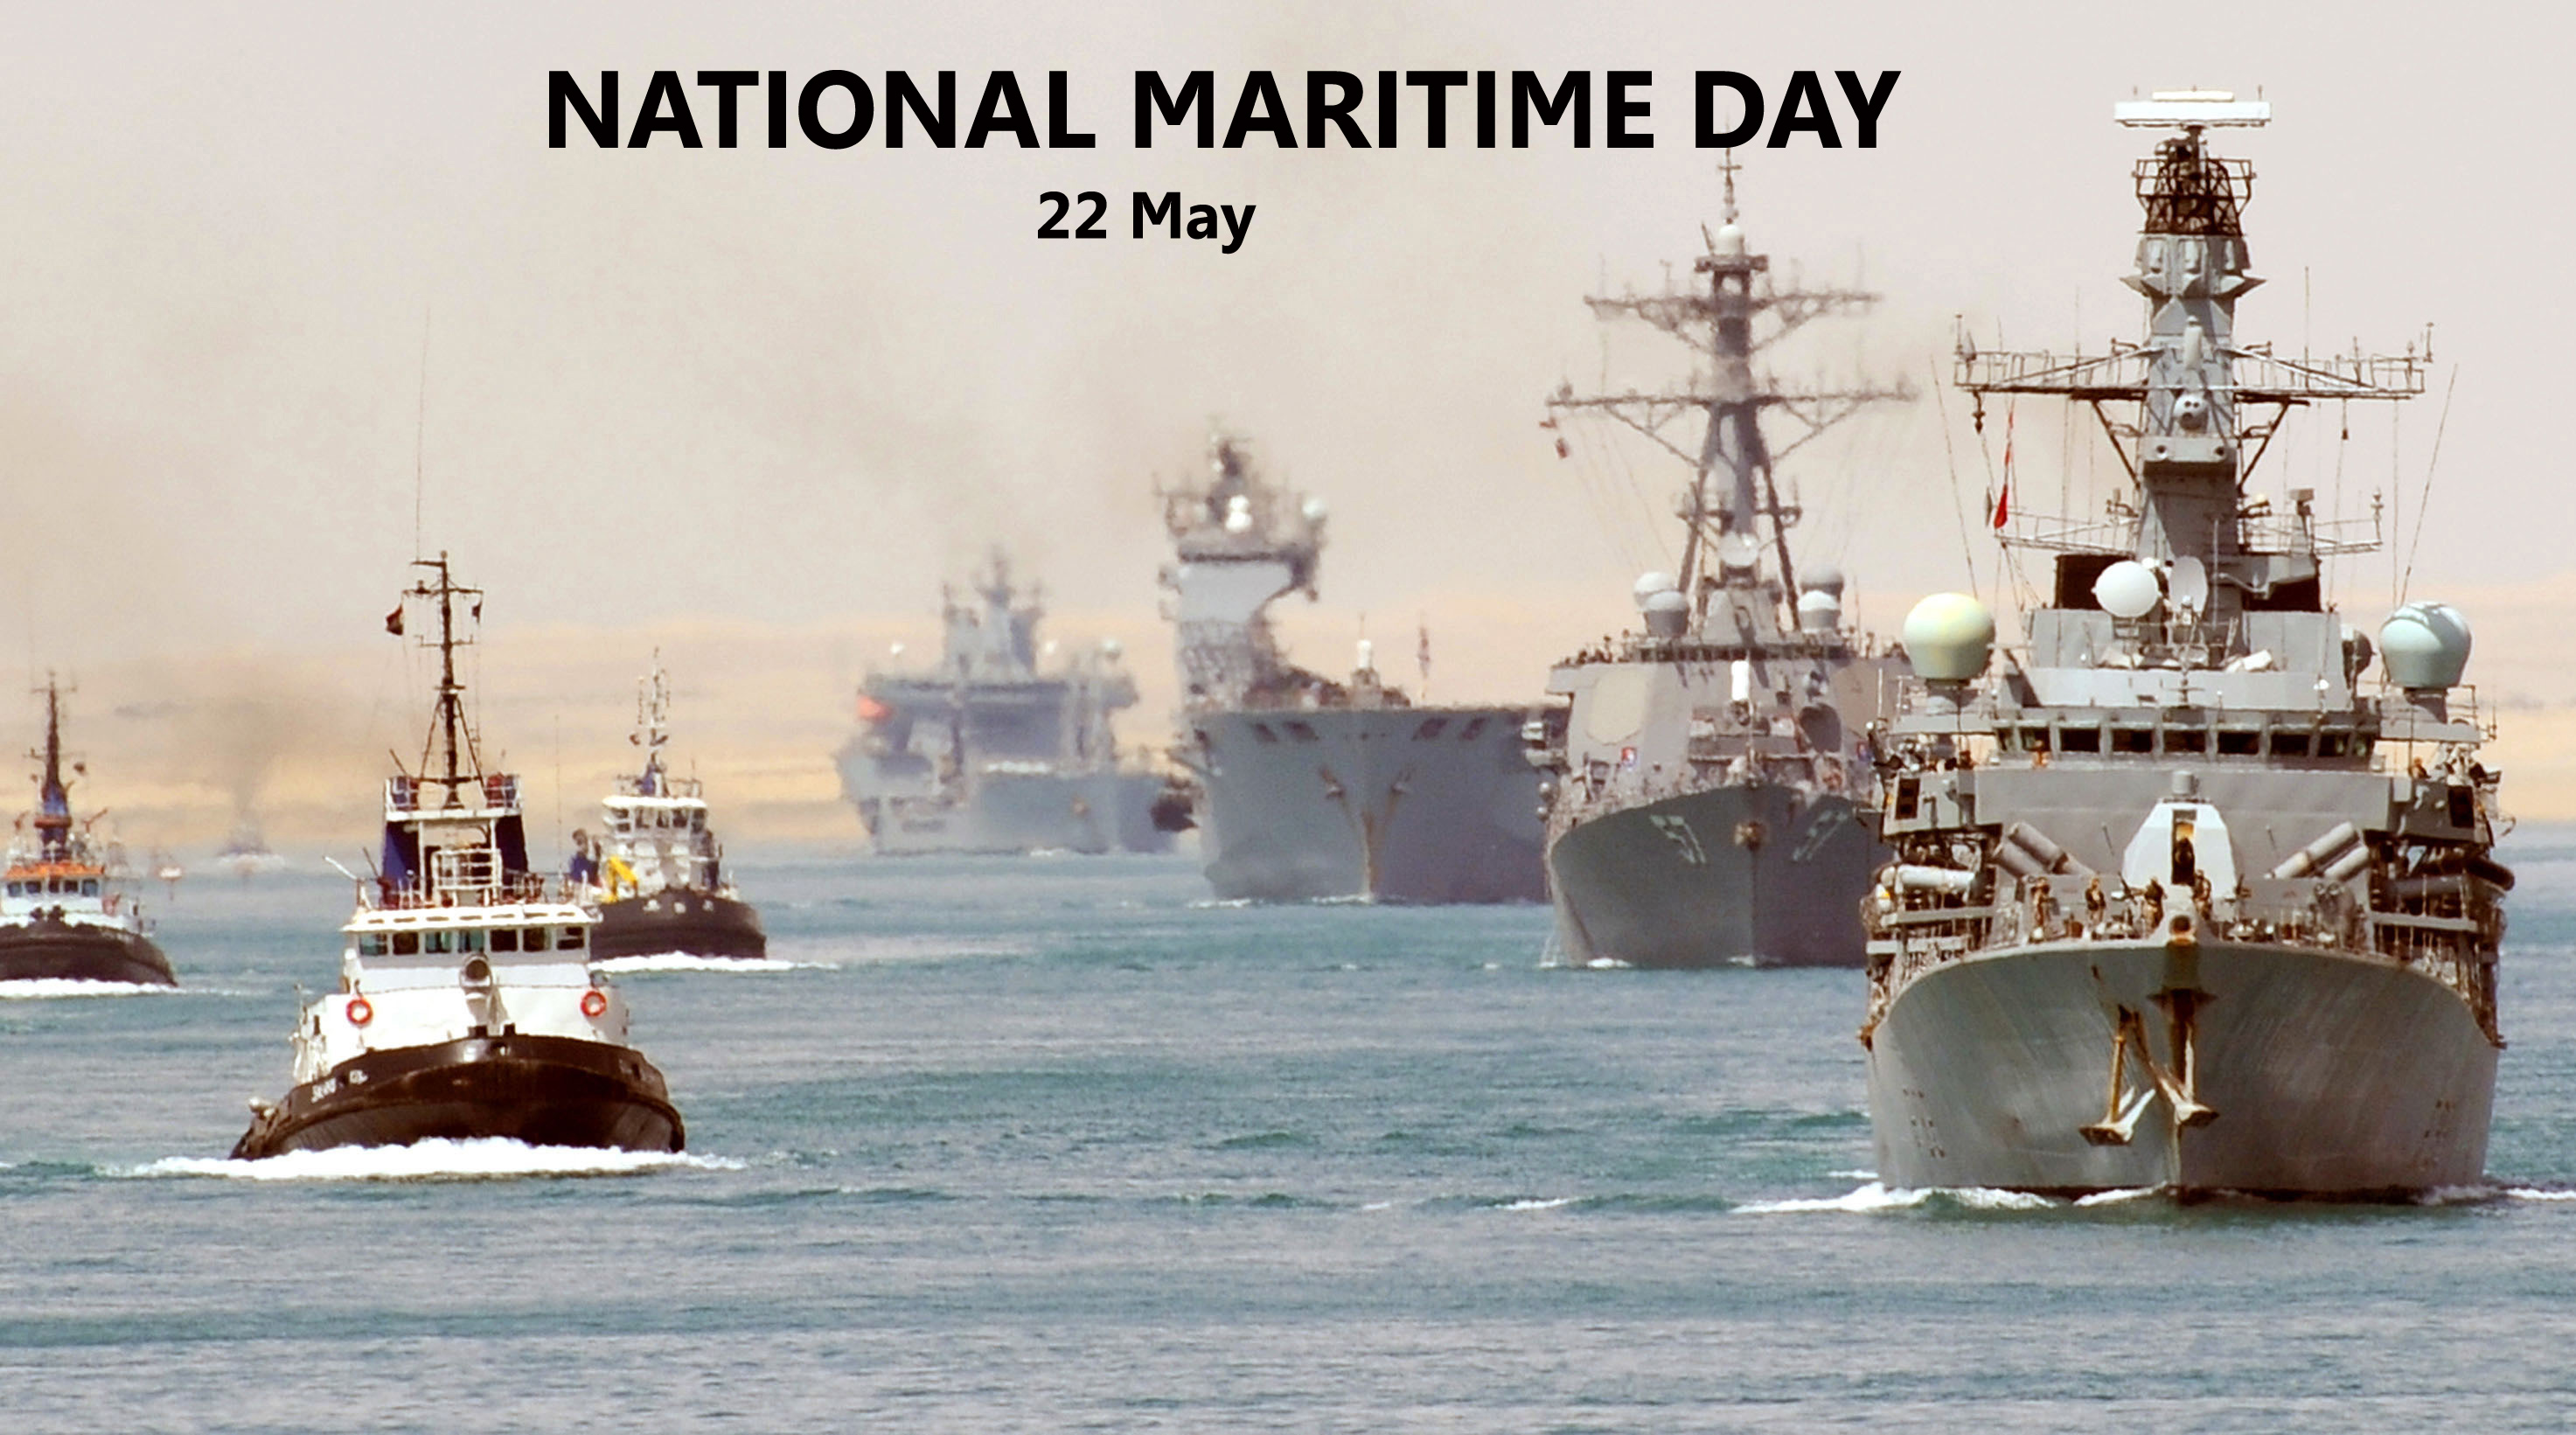 35 Best National Maritime Day 2018 Pictures And Photos 2946x1641